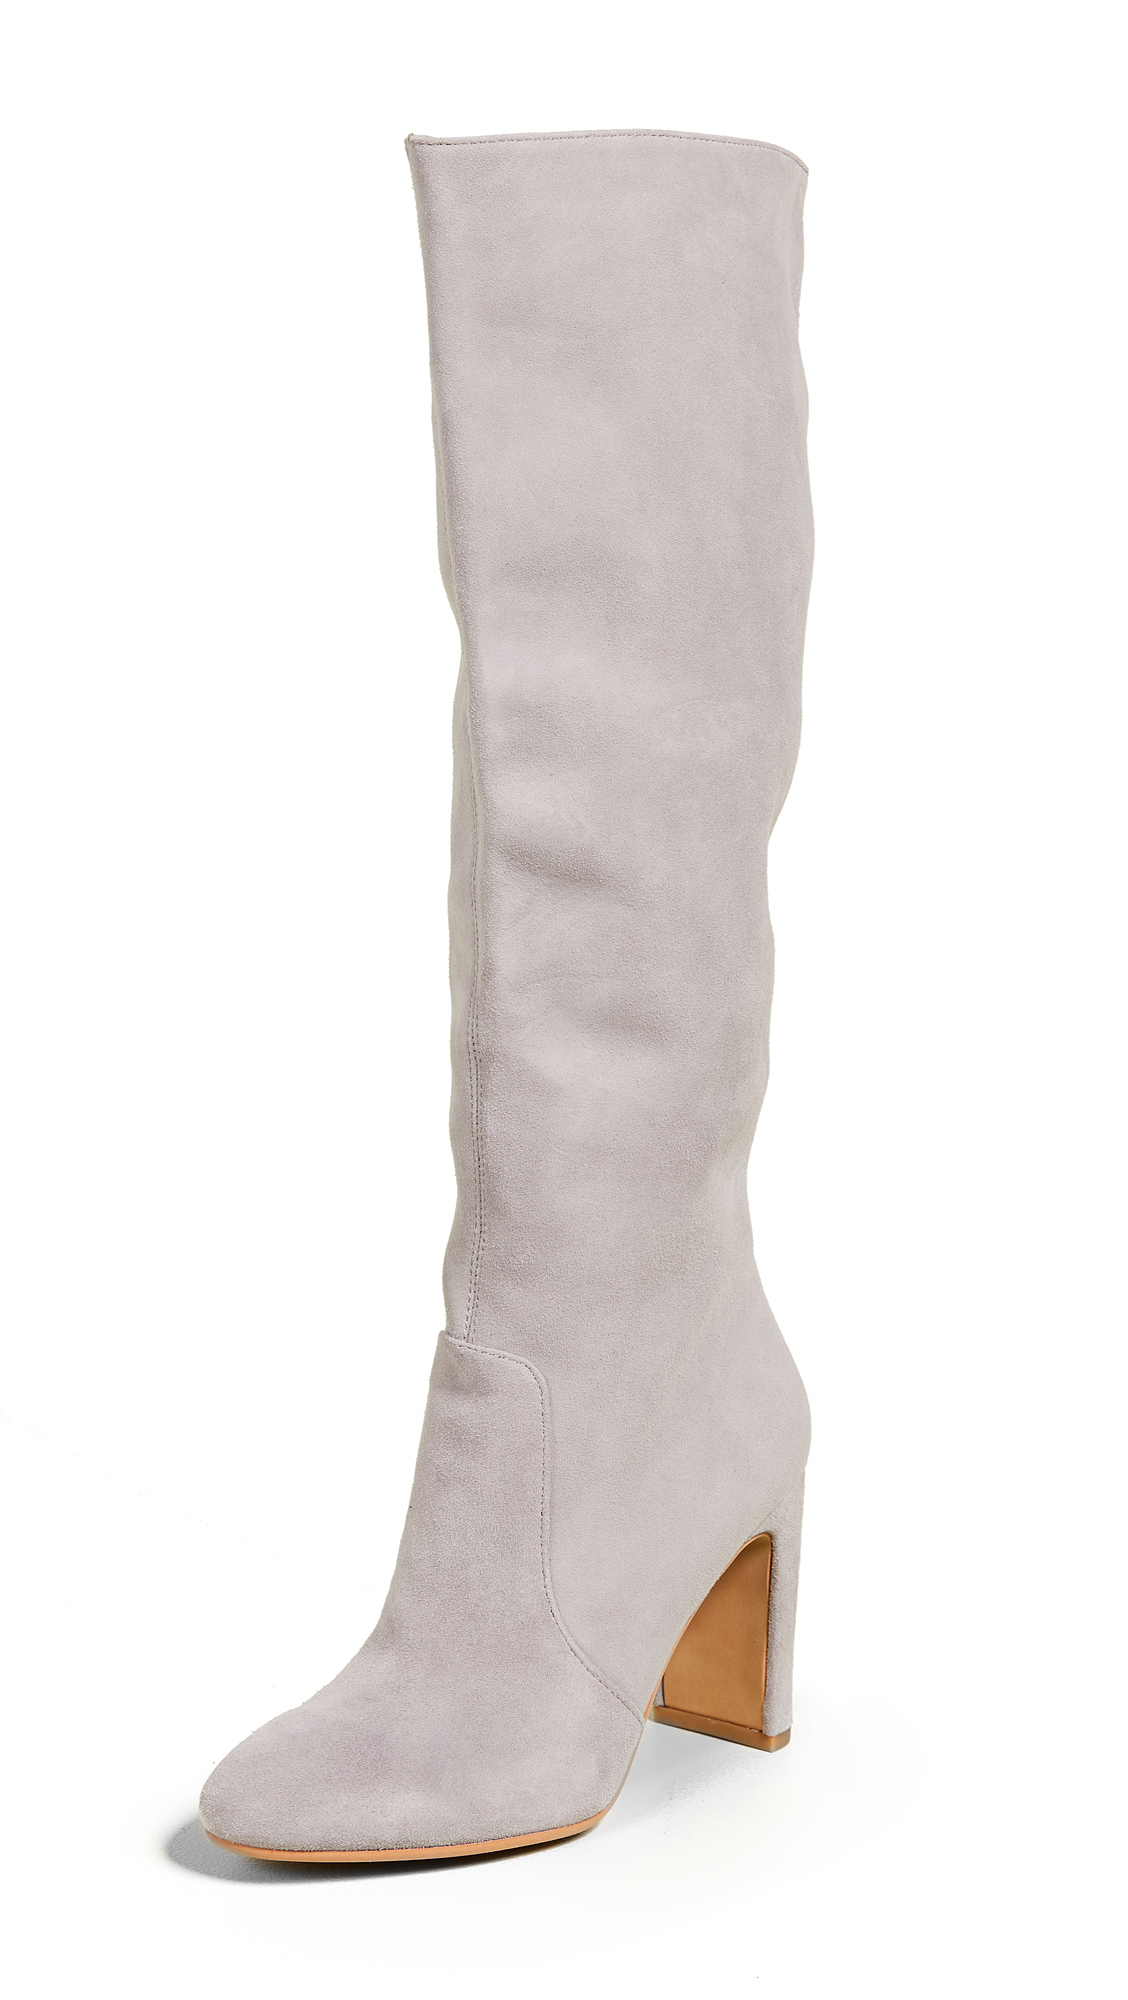 Dolce Vita Coop Tall Boots In Smoke